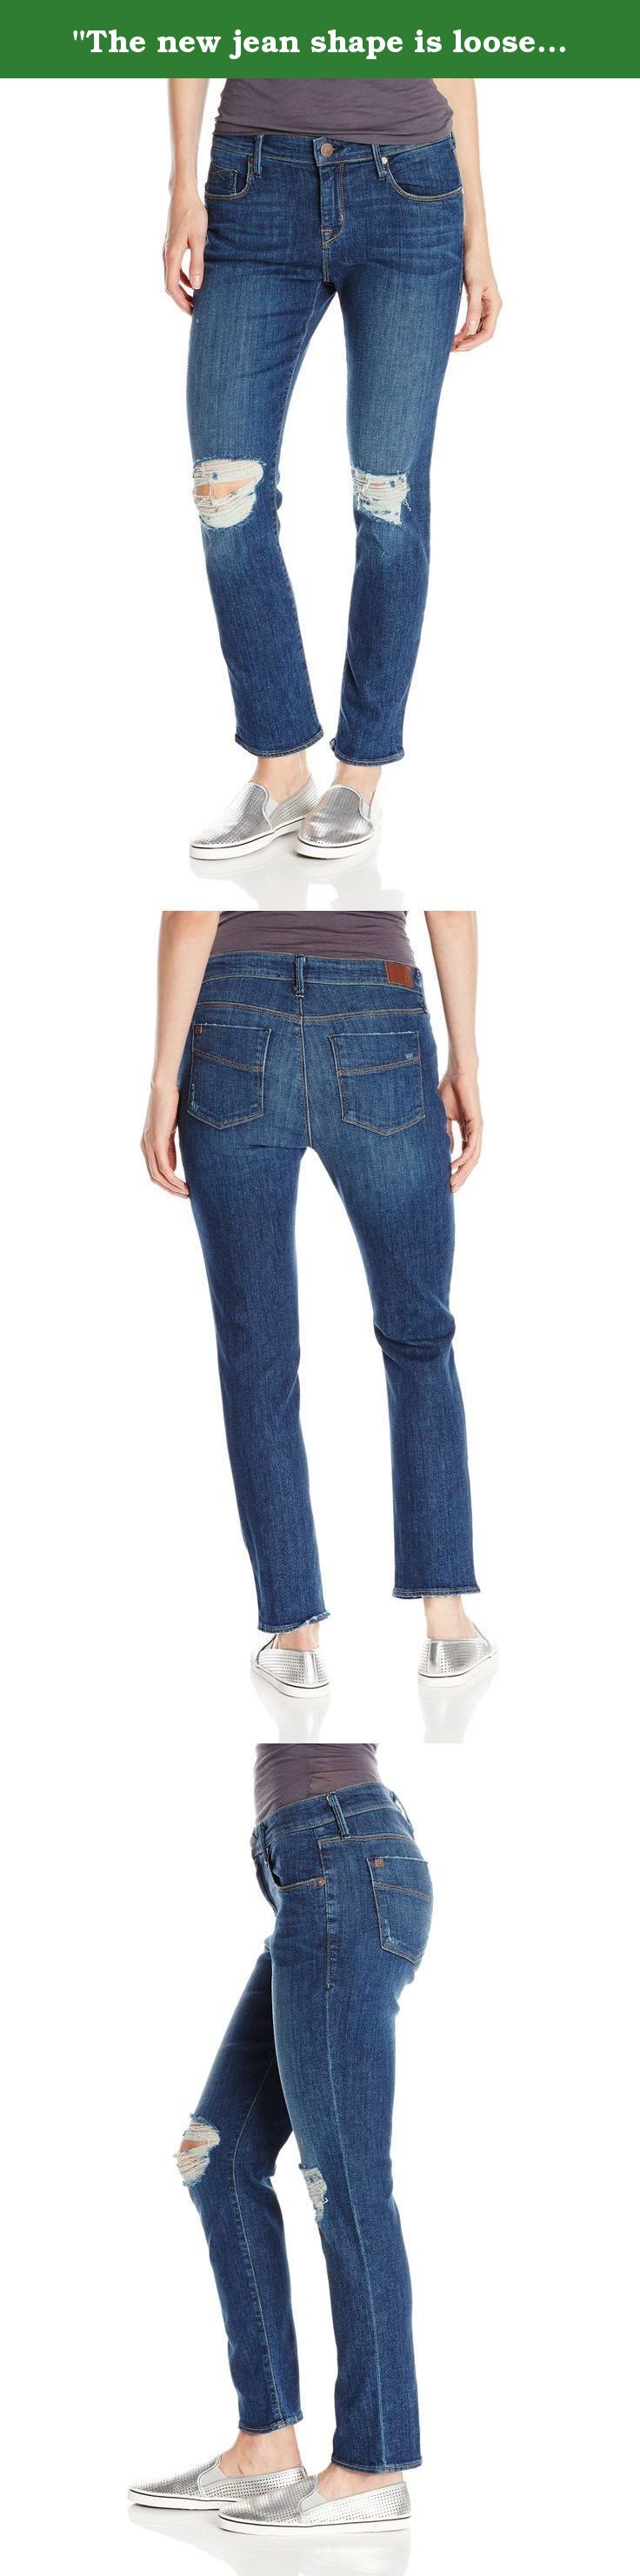 """The new jean shape is loose fit and cropped. It's time to pack away those skinnies!"" Denimocracy Women's Presley Cuffed Boyfriend Jean In Cat Fight. Democracy Presley cuffed boyfriend jean."